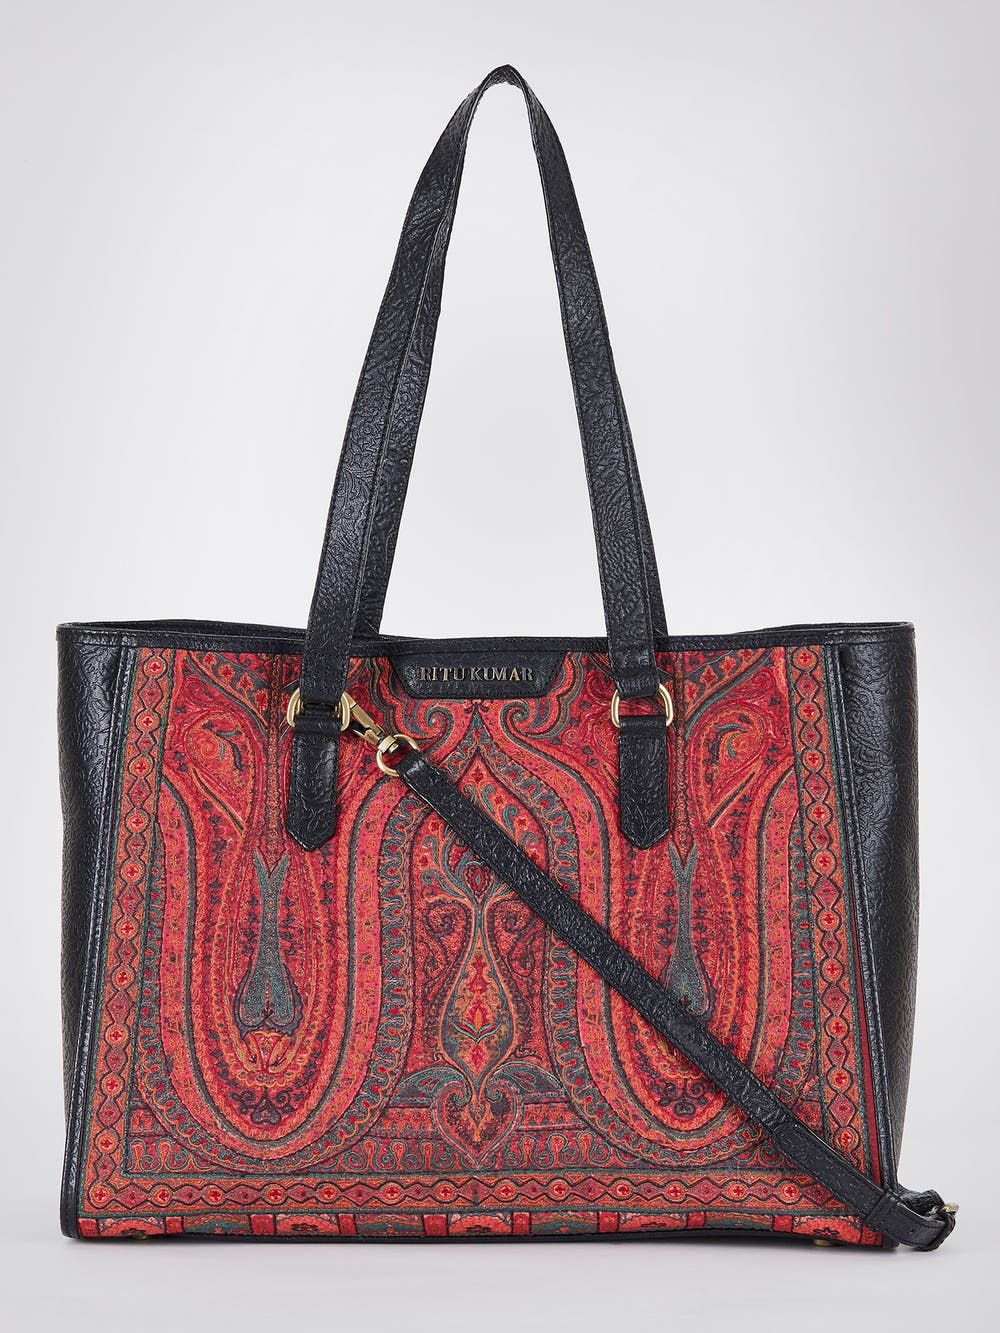 Black & Maroon Embroidered Leather Hand Bag